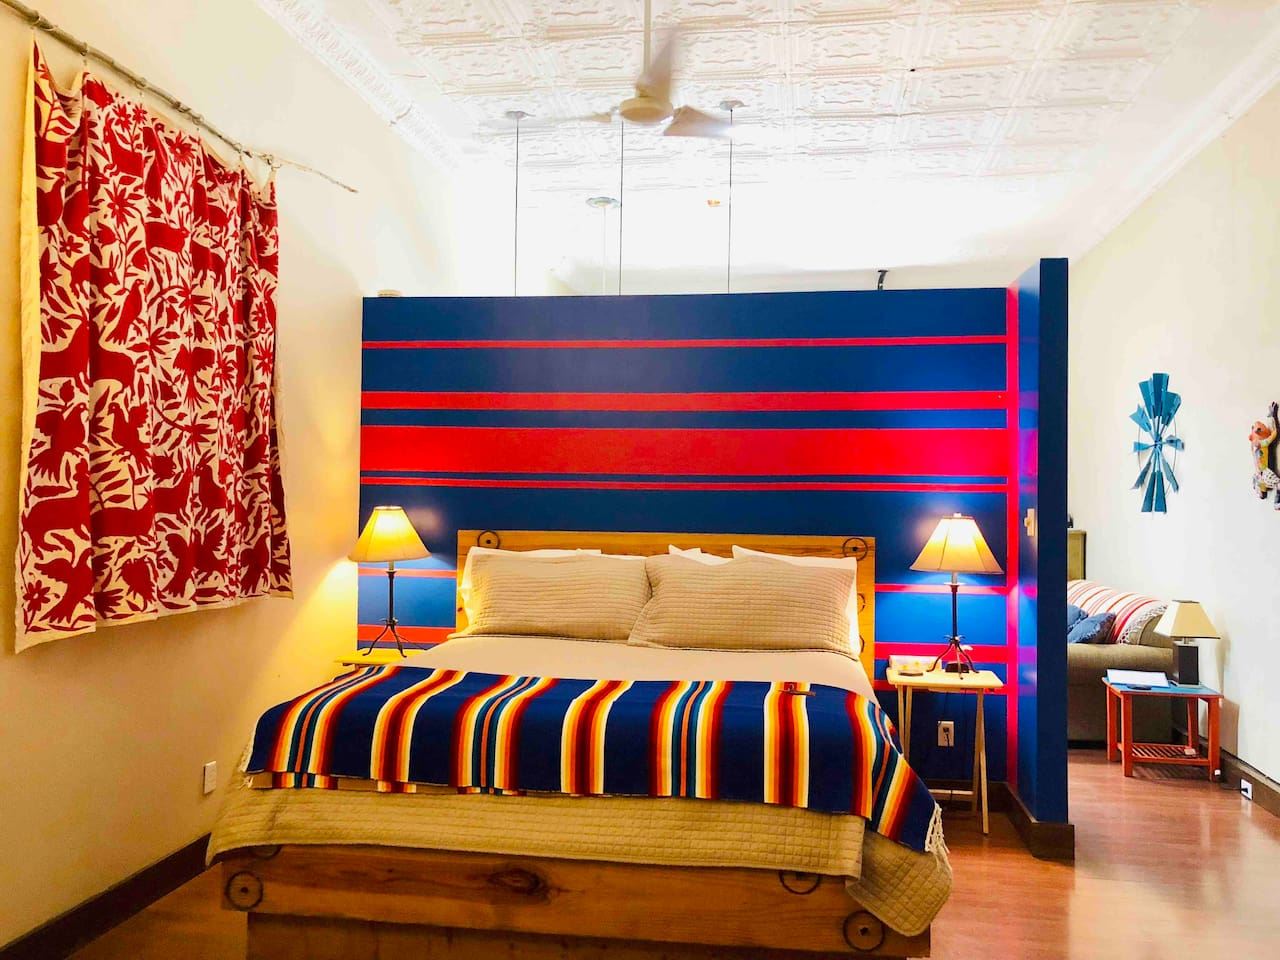 Sleep in a king sized bed in the Mexico inspired Loft 2!